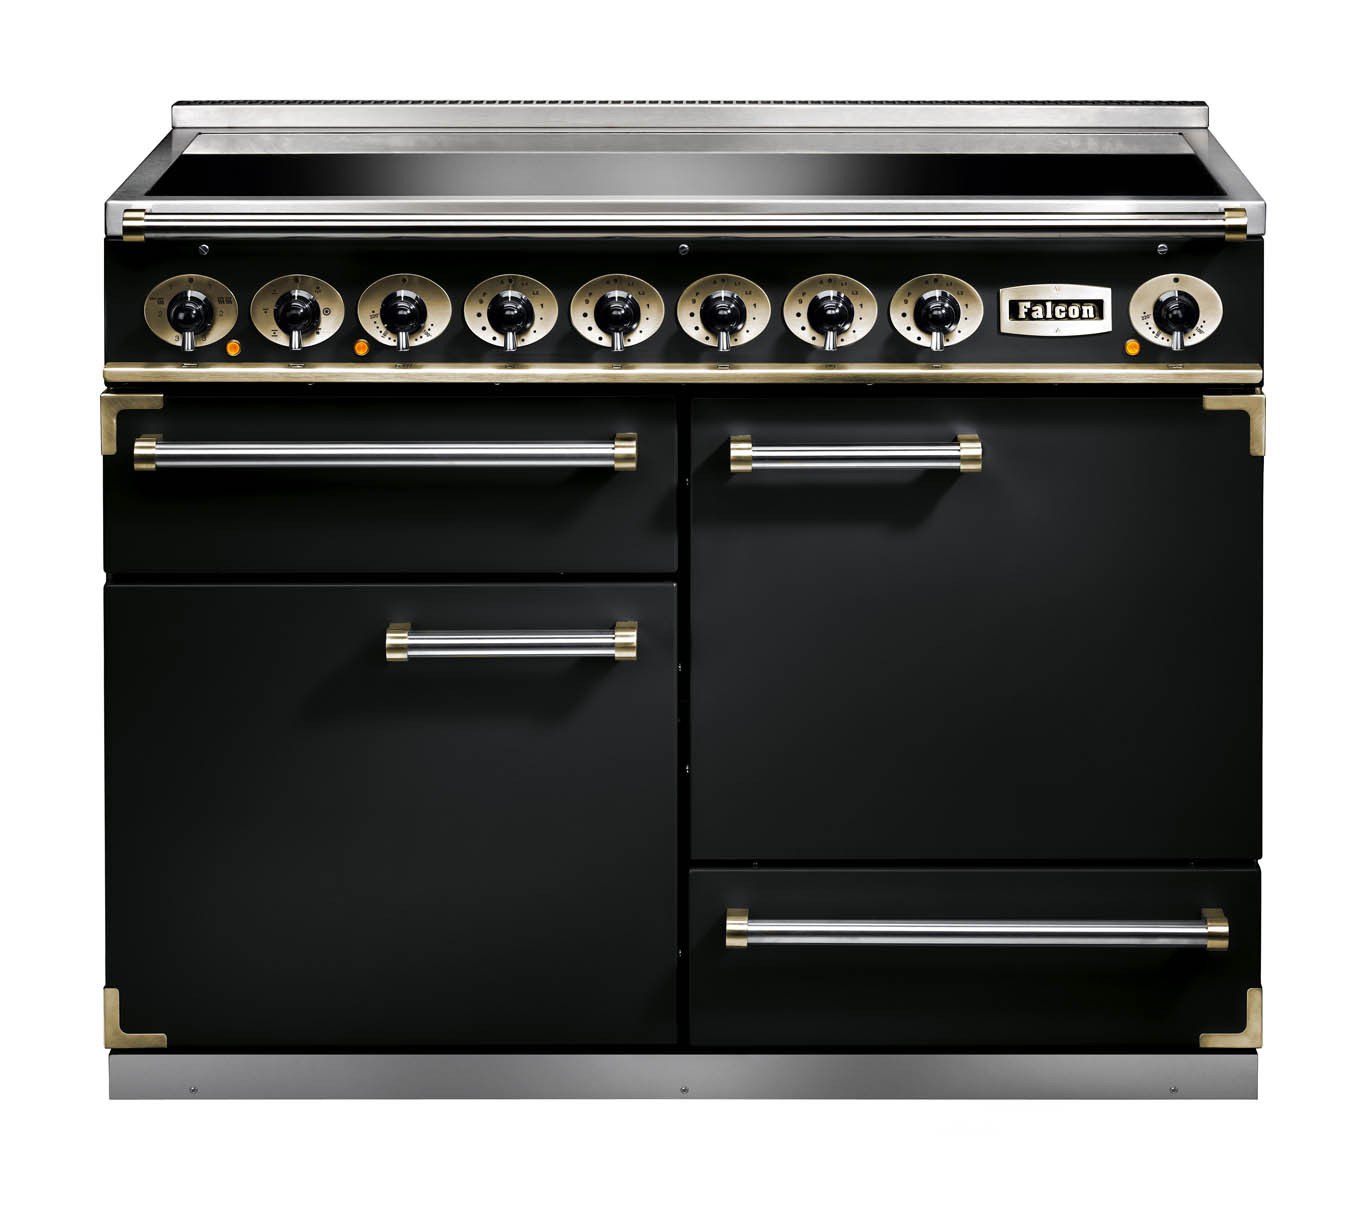 Falcon 1092 Deluxe Induction Black/Brass Range Cooker